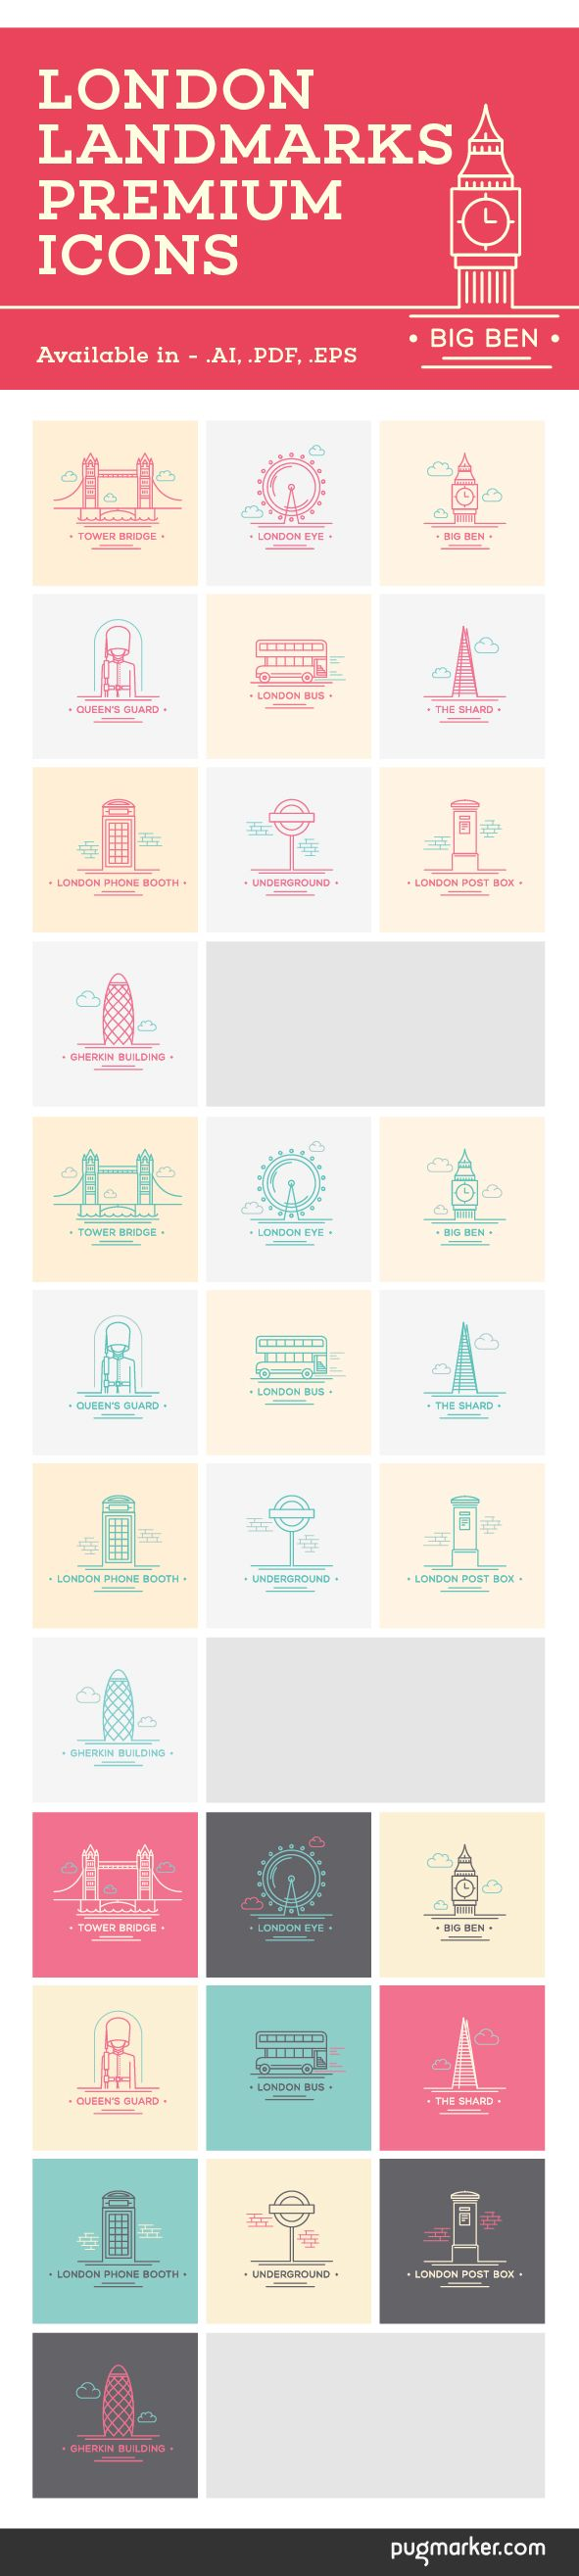 London landmark premium icons / illustrations on Behance